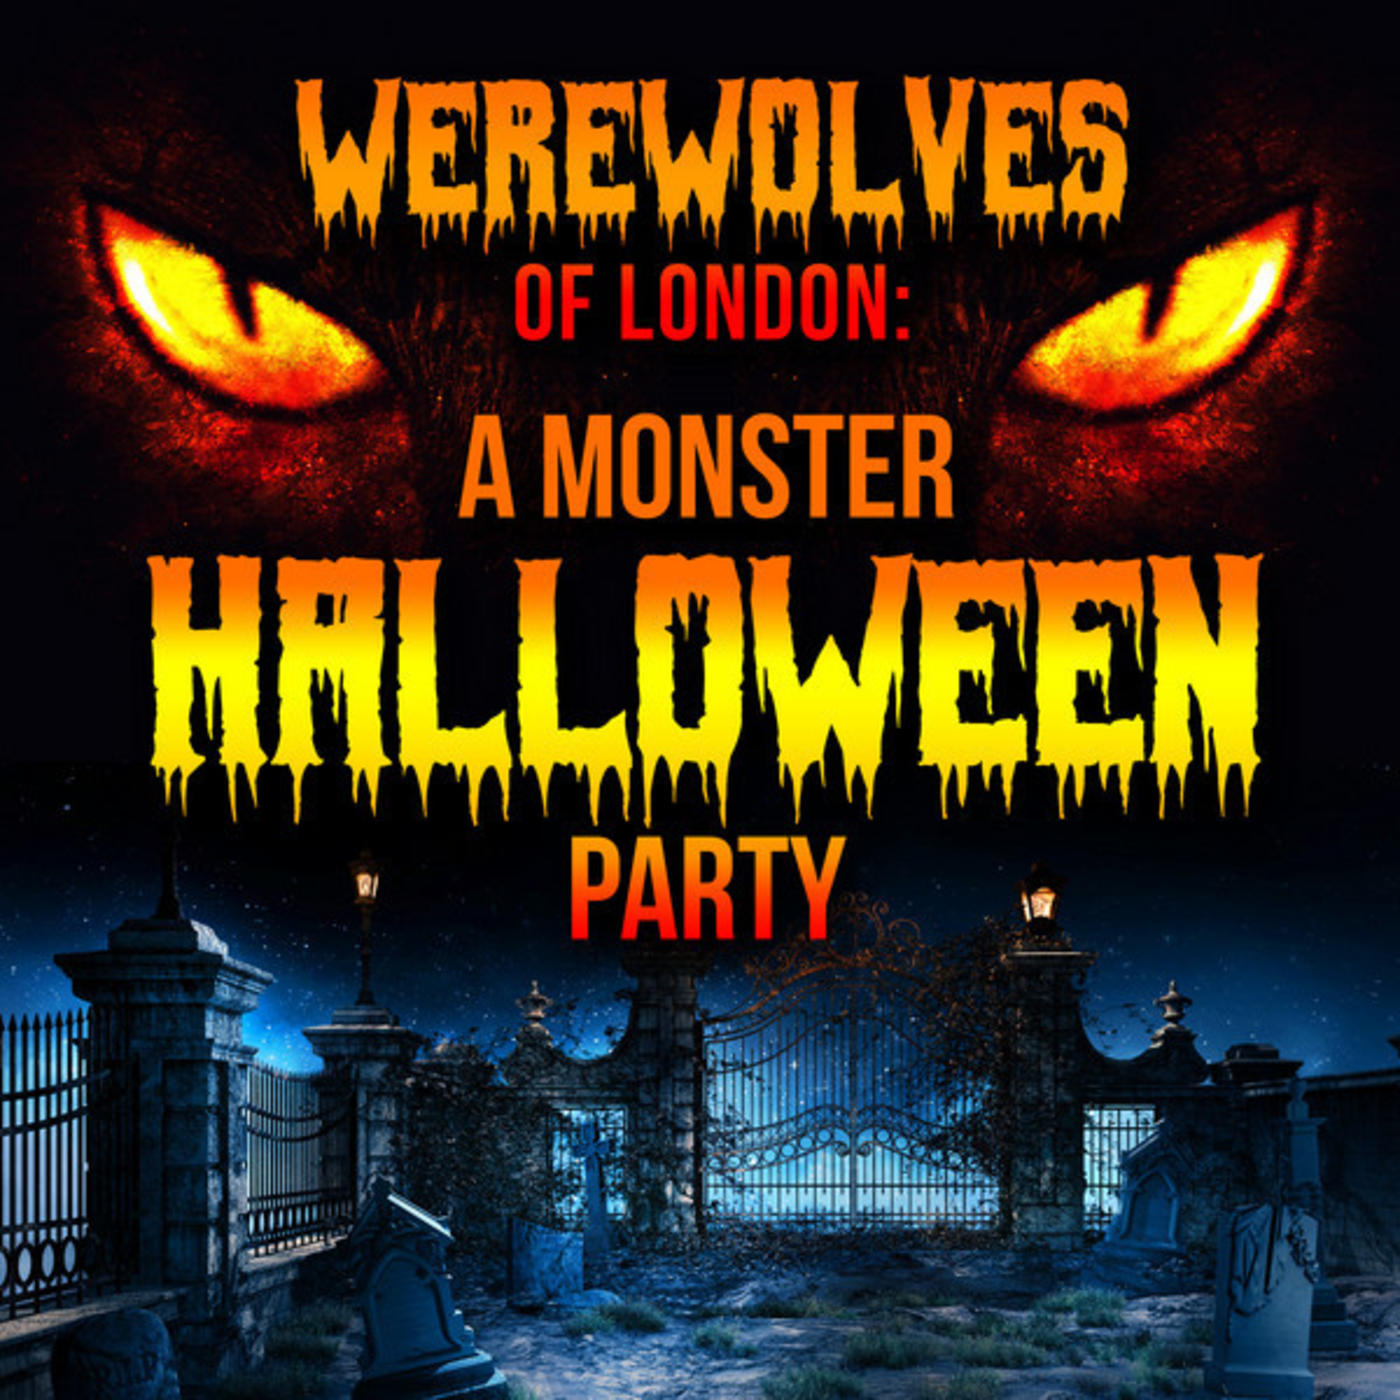 Werewolves of London: A Monster Halloween Party